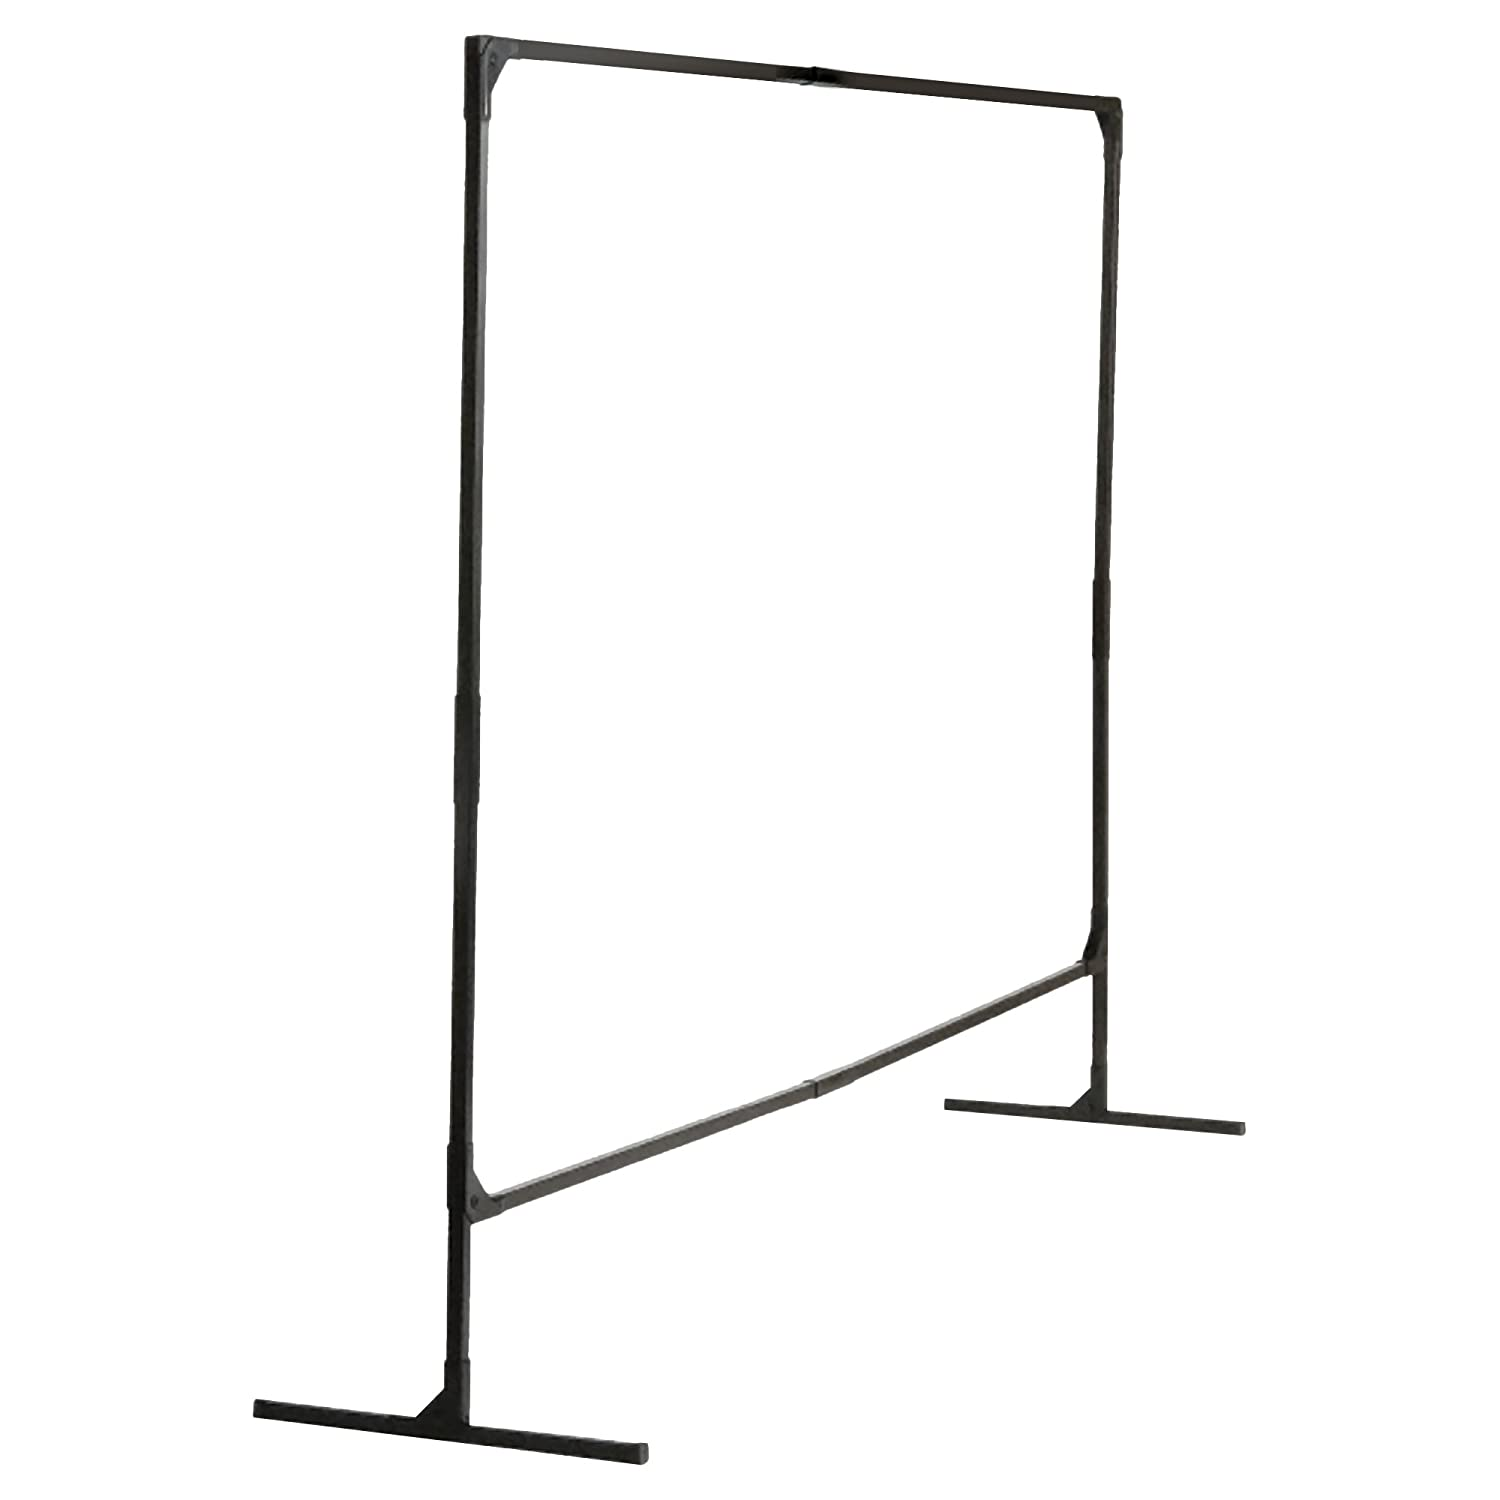 Wilson Stur-D-Screen Frame (36338), 6 x 8 feet, Single Panel, T Legs, Black, For Welding Curtains, 1 / Order Kimberly-Clark Professional